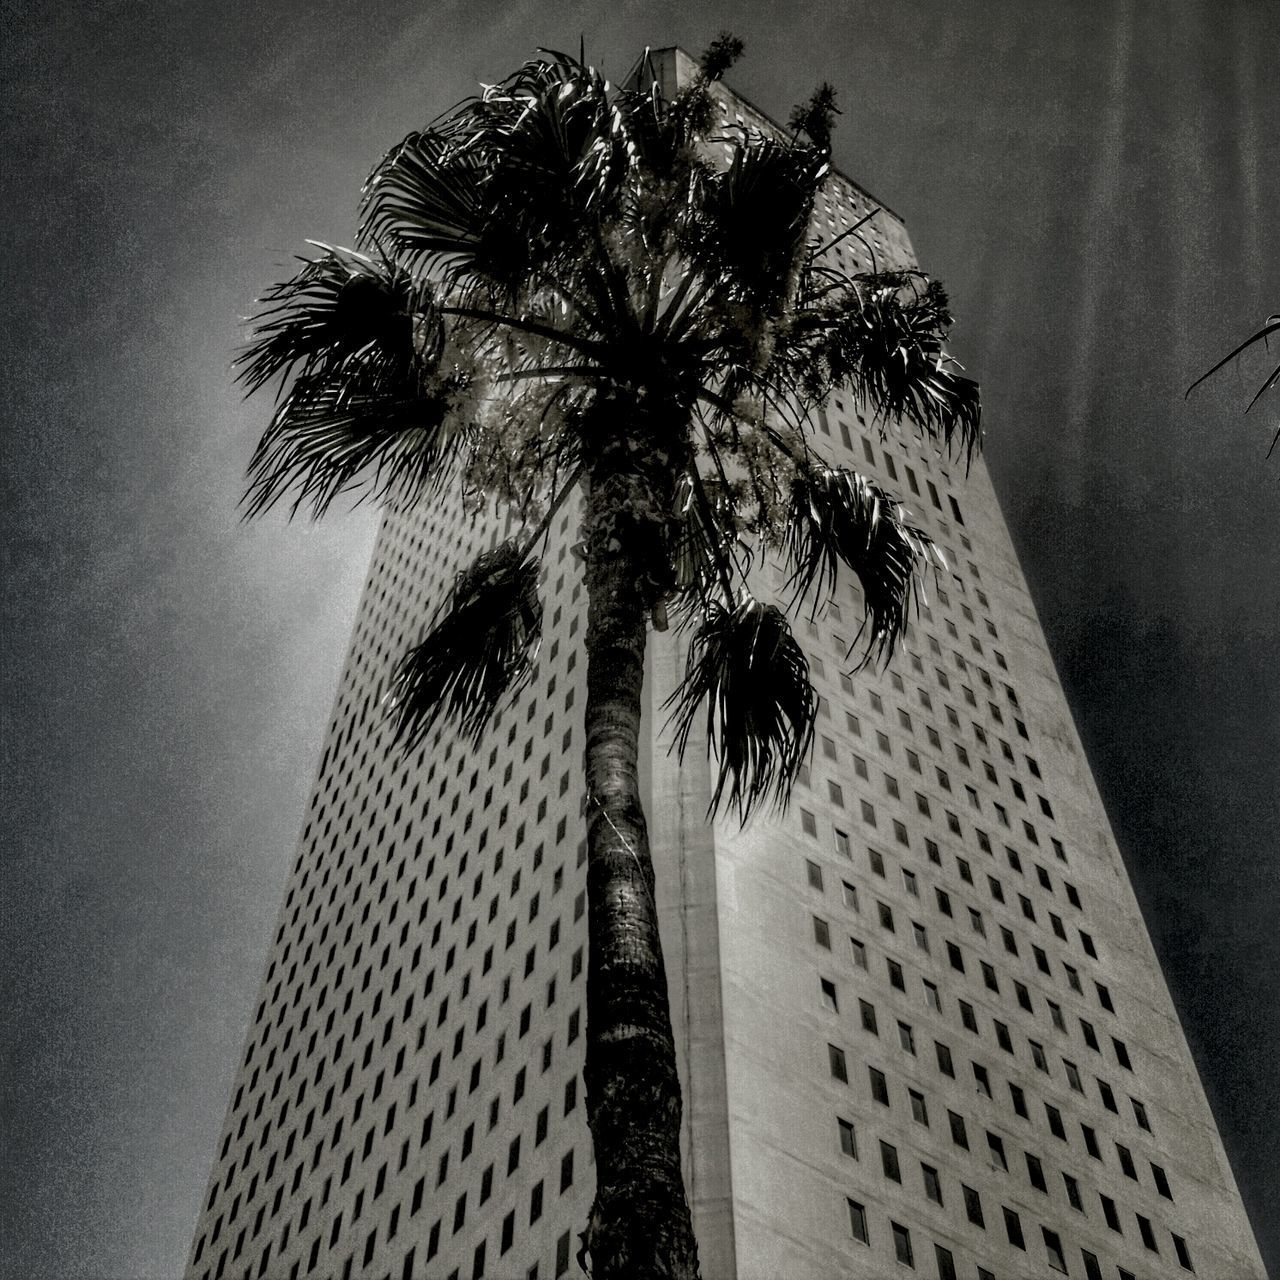 palm tree, low angle view, tree, tall - high, tree trunk, built structure, tall, architecture, outdoors, building exterior, no people, day, travel destinations, sky, growth, skyscraper, city, nature